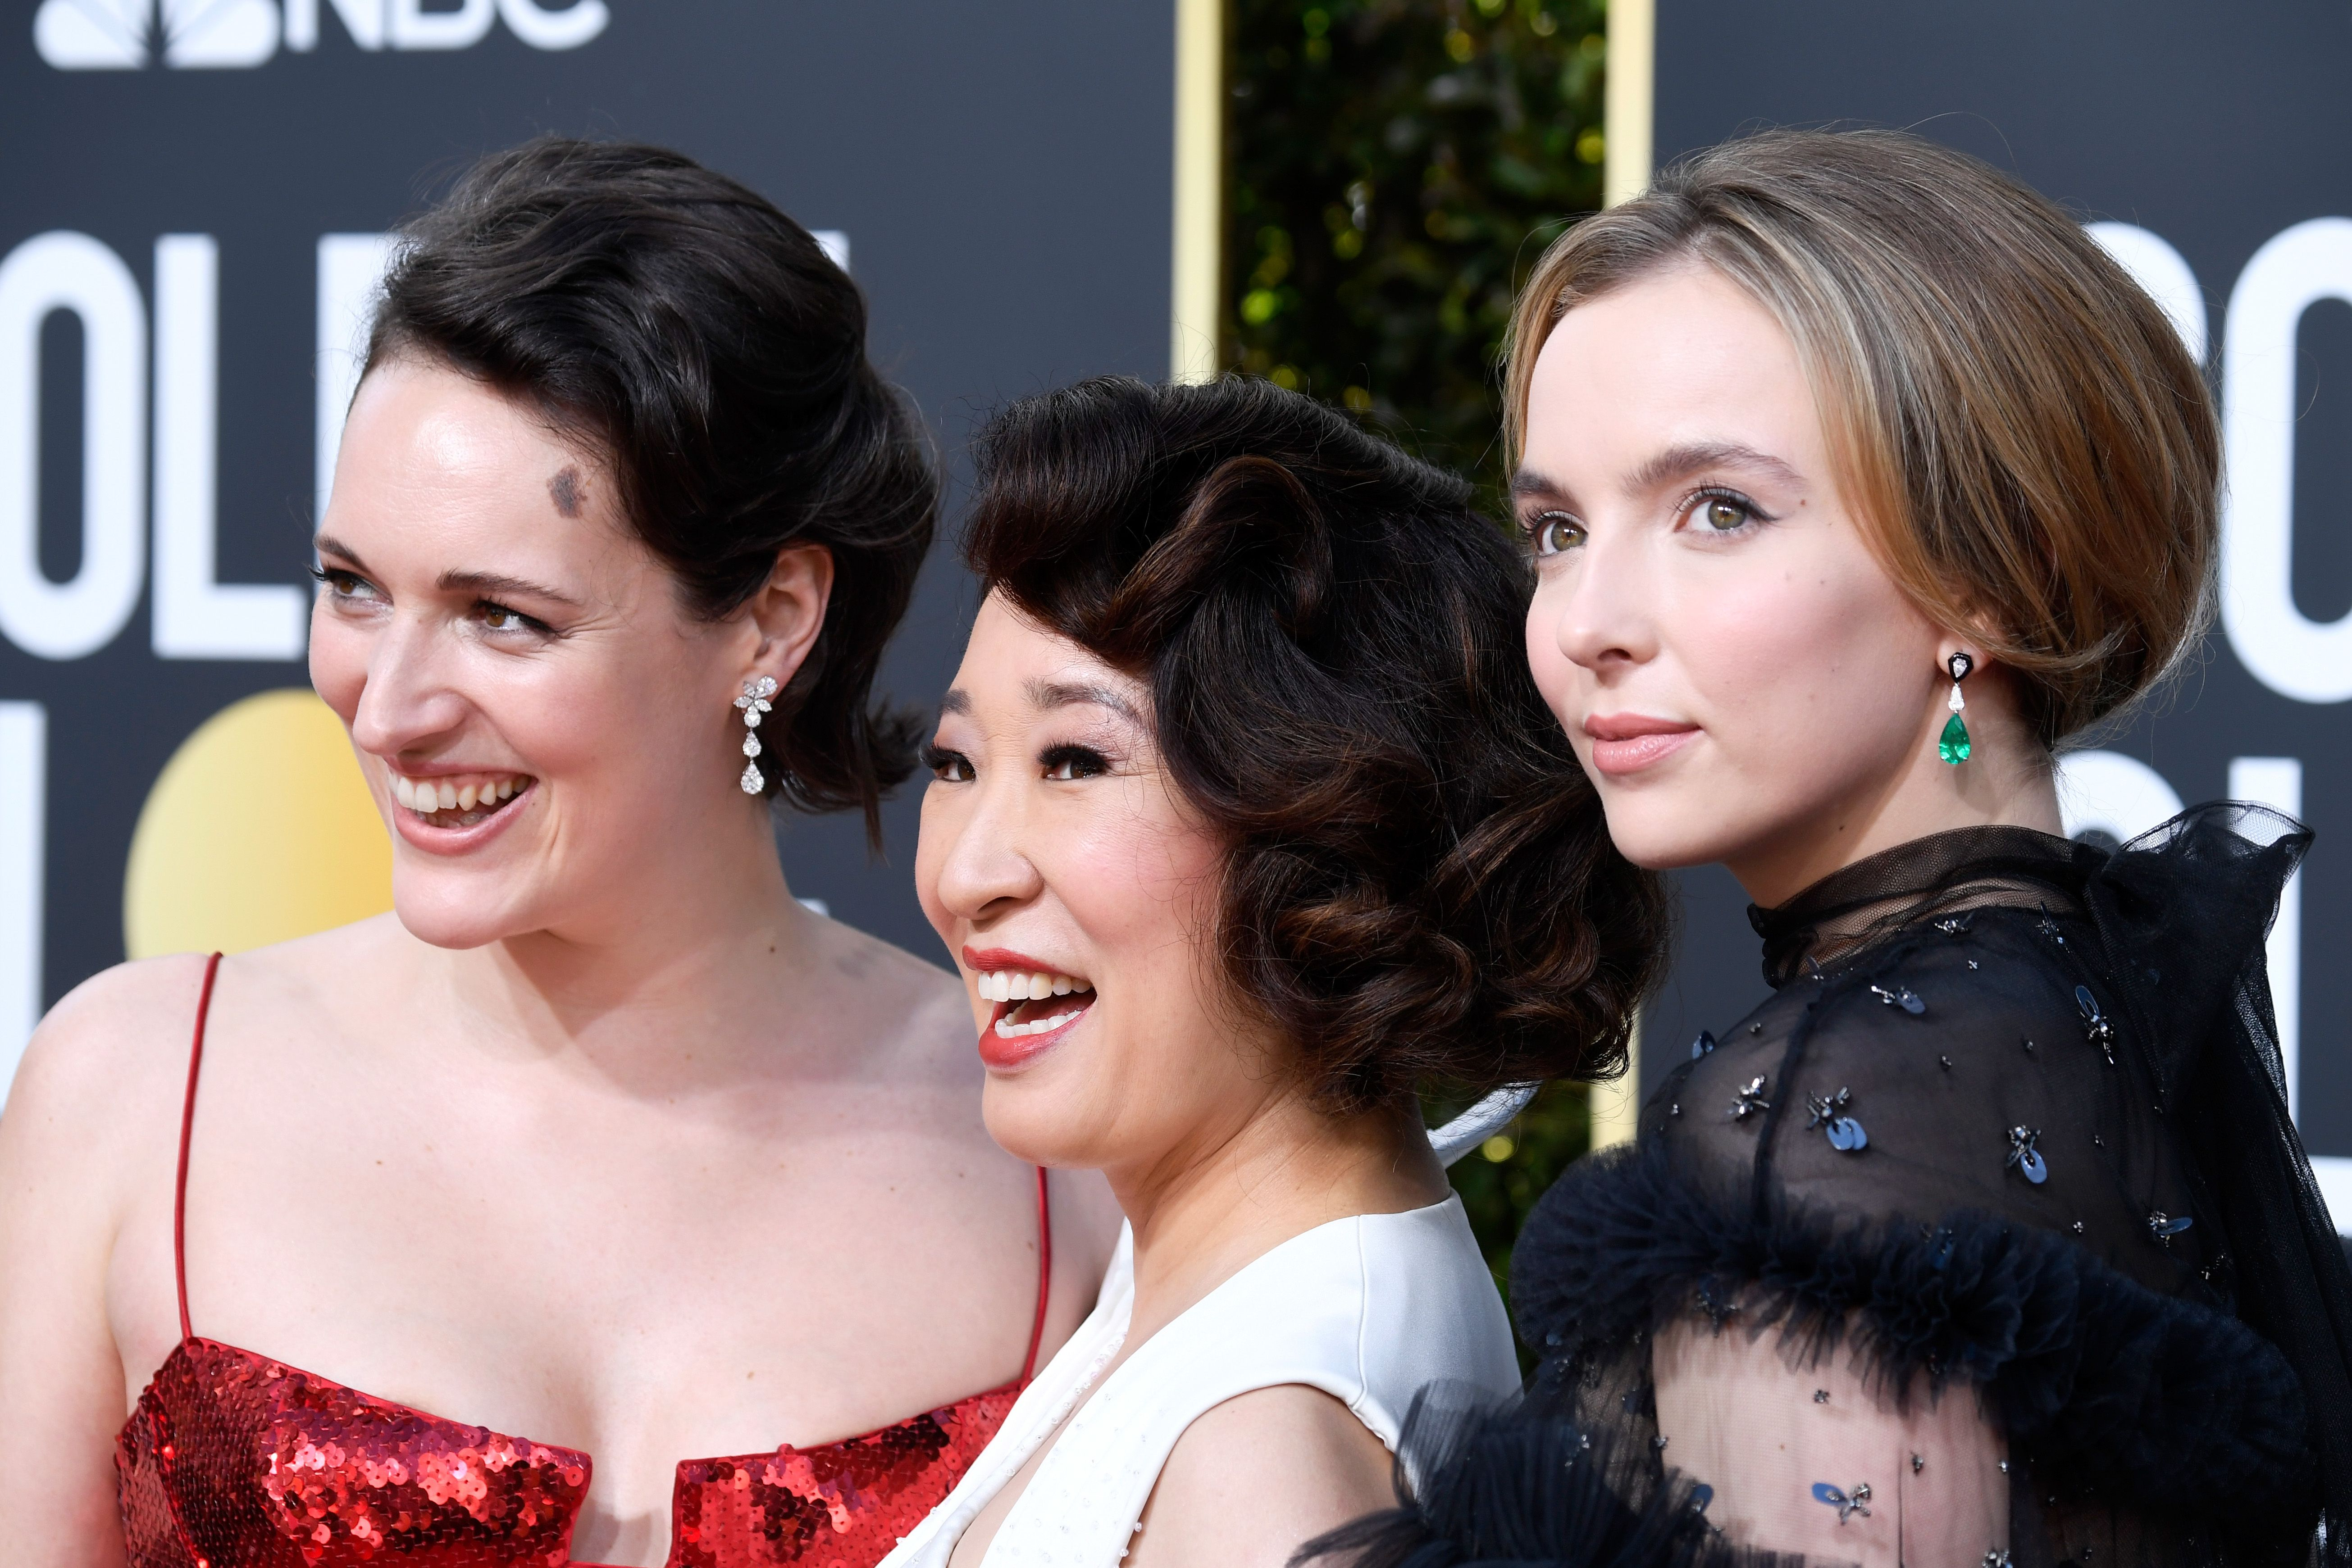 Killing Eve creator and writer Phoebe Waller-Bridge attended the 2019 Golden Globes with the show's stars Sandra Oh and Jodie Comer.